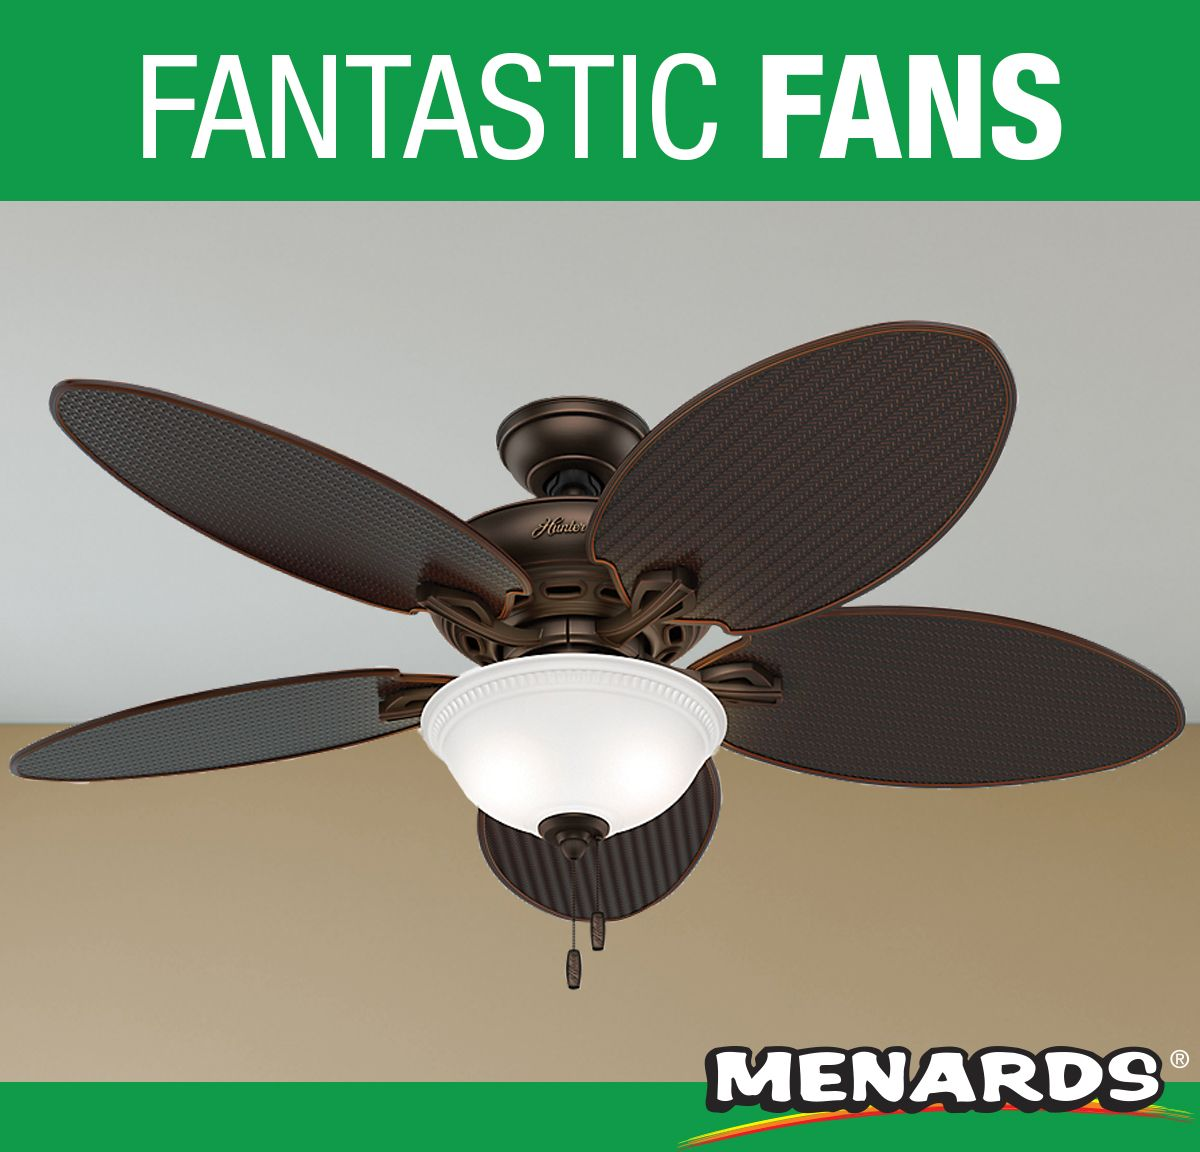 The Hunter Cape Breton Led Ceiling Fan Is A Damp Rated Outdoor Patio Fan With Global Appeal Built To Withstand With Images Patio Fan Outdoor Fans Patio Led Ceiling Fan